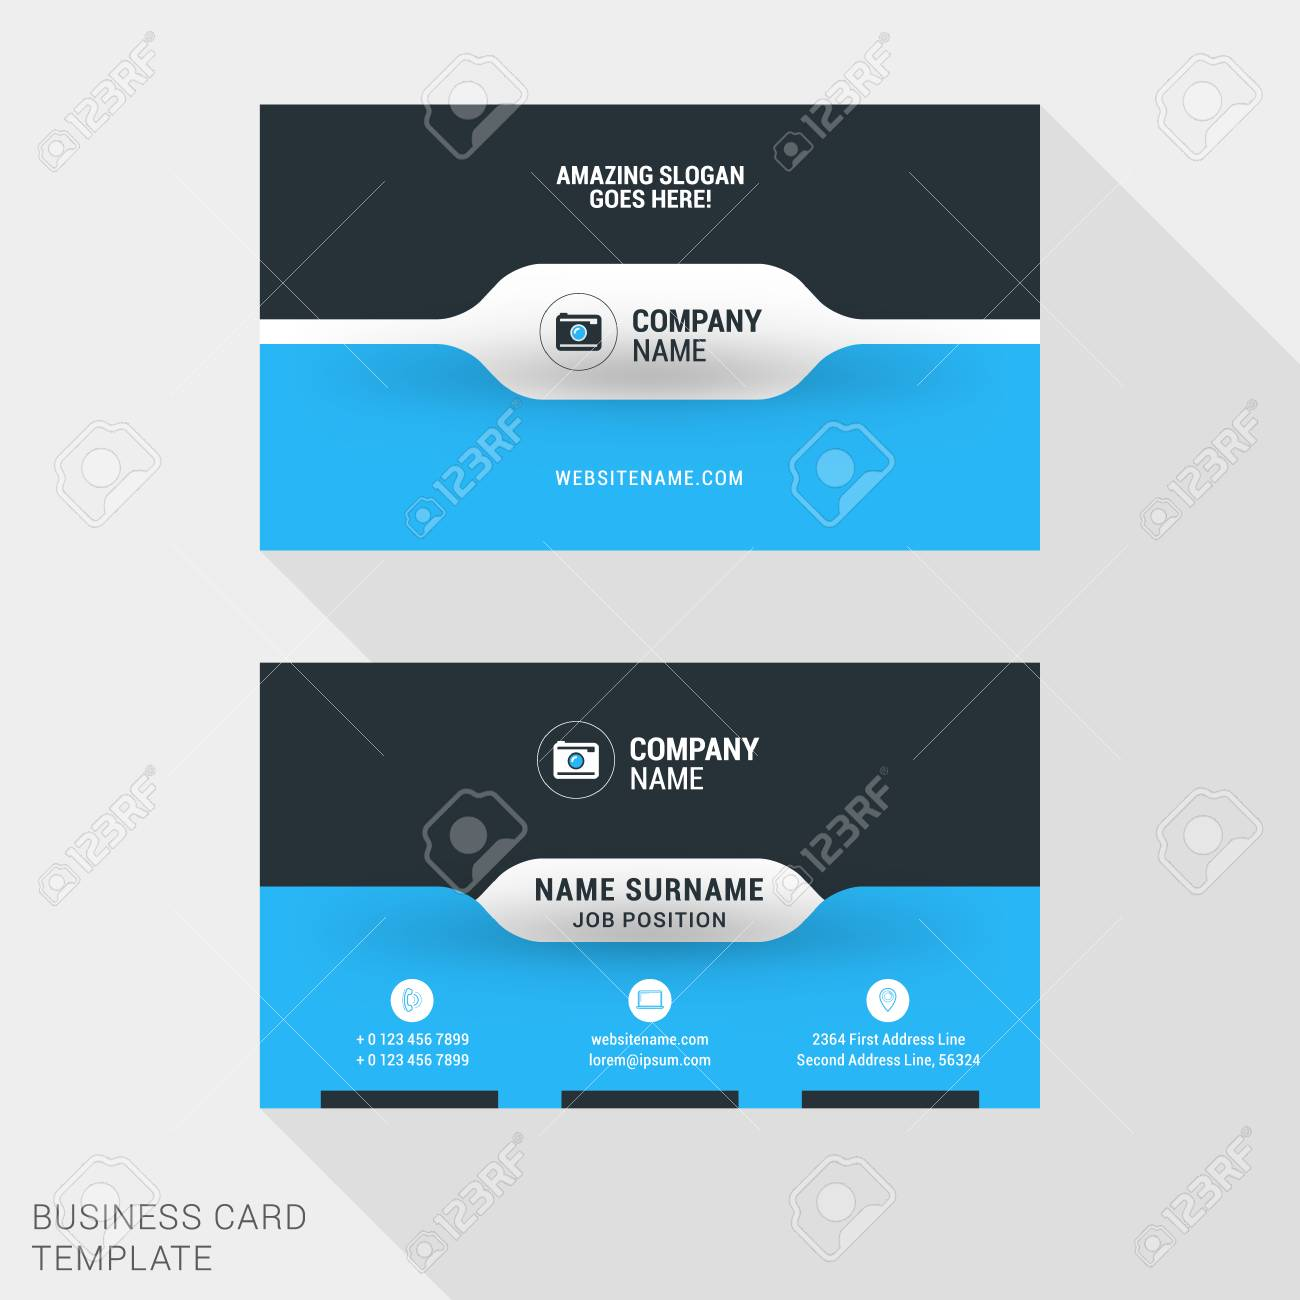 Creative business card print template flat design vector banco de imagens creative business card print template flat design vector illustration stationery design reheart Image collections